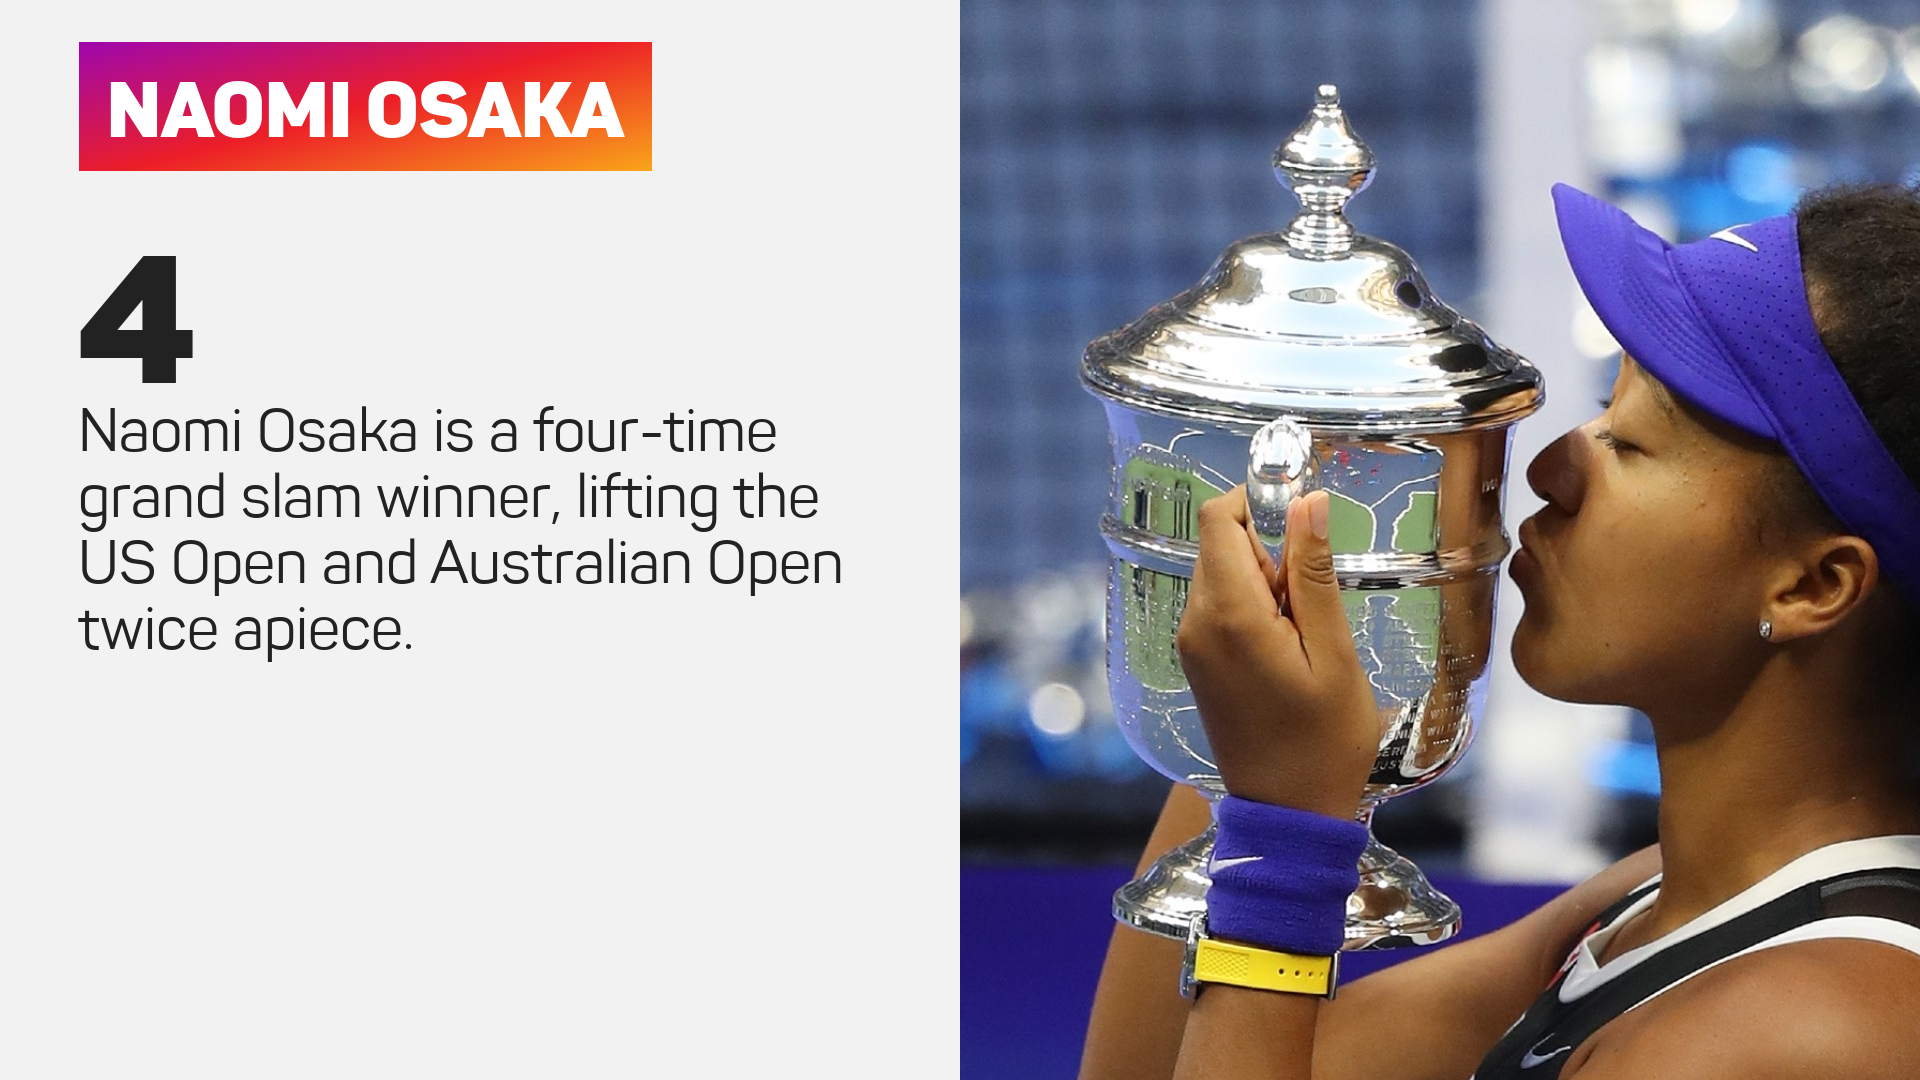 Naomi Osaka is aiming to defend her US Open title